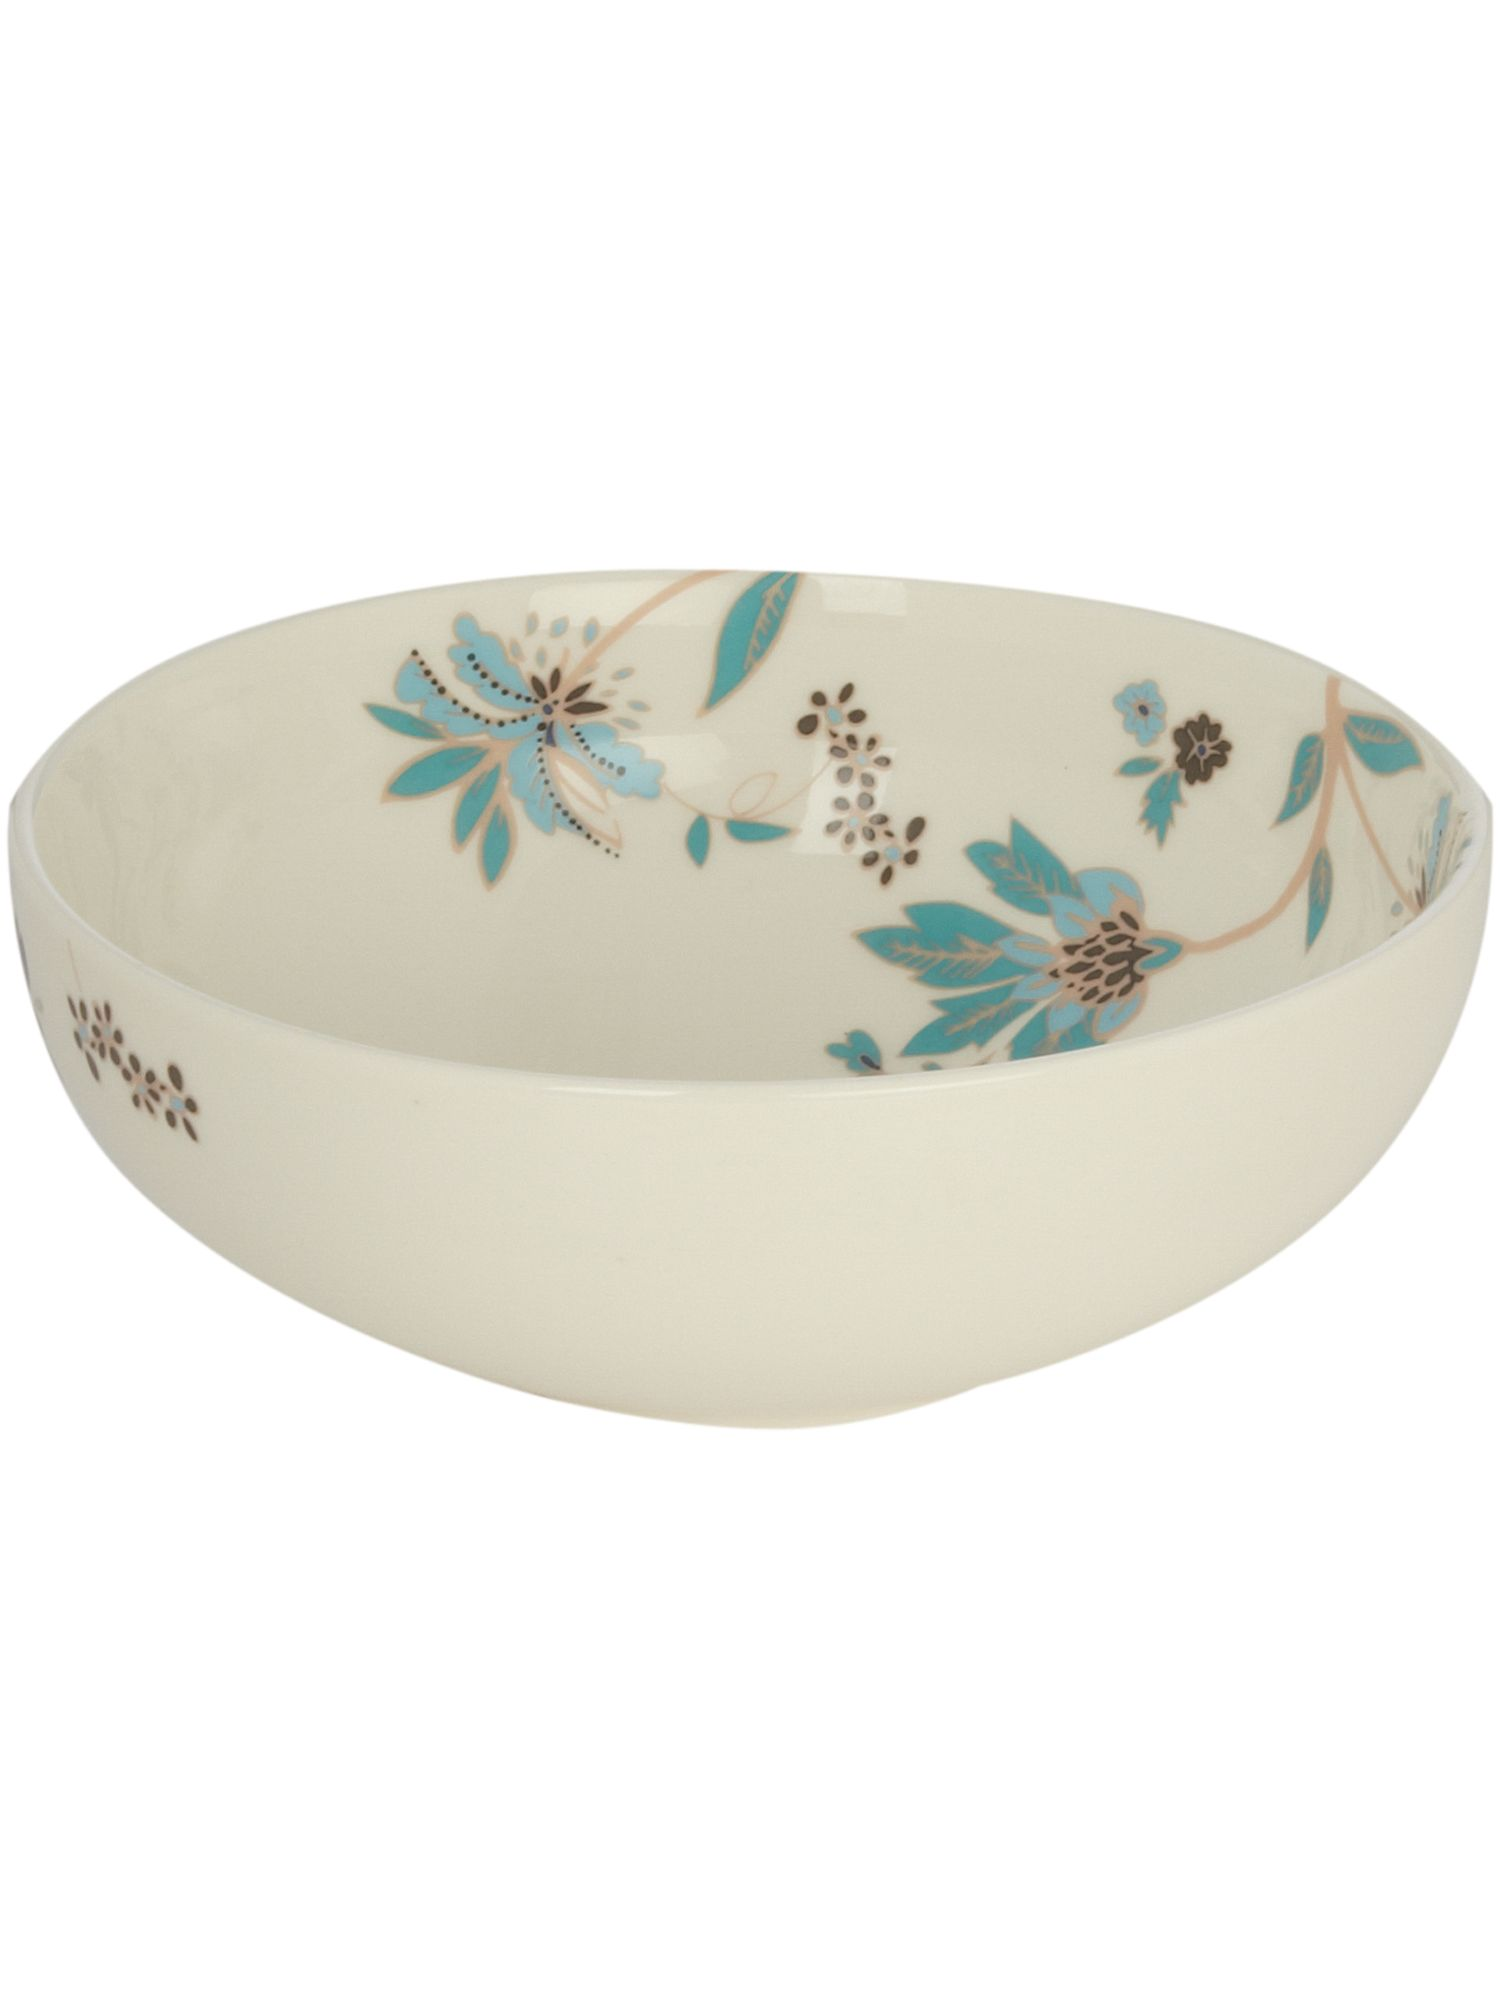 Monsoon Veronica Soup/Cereal Bowl